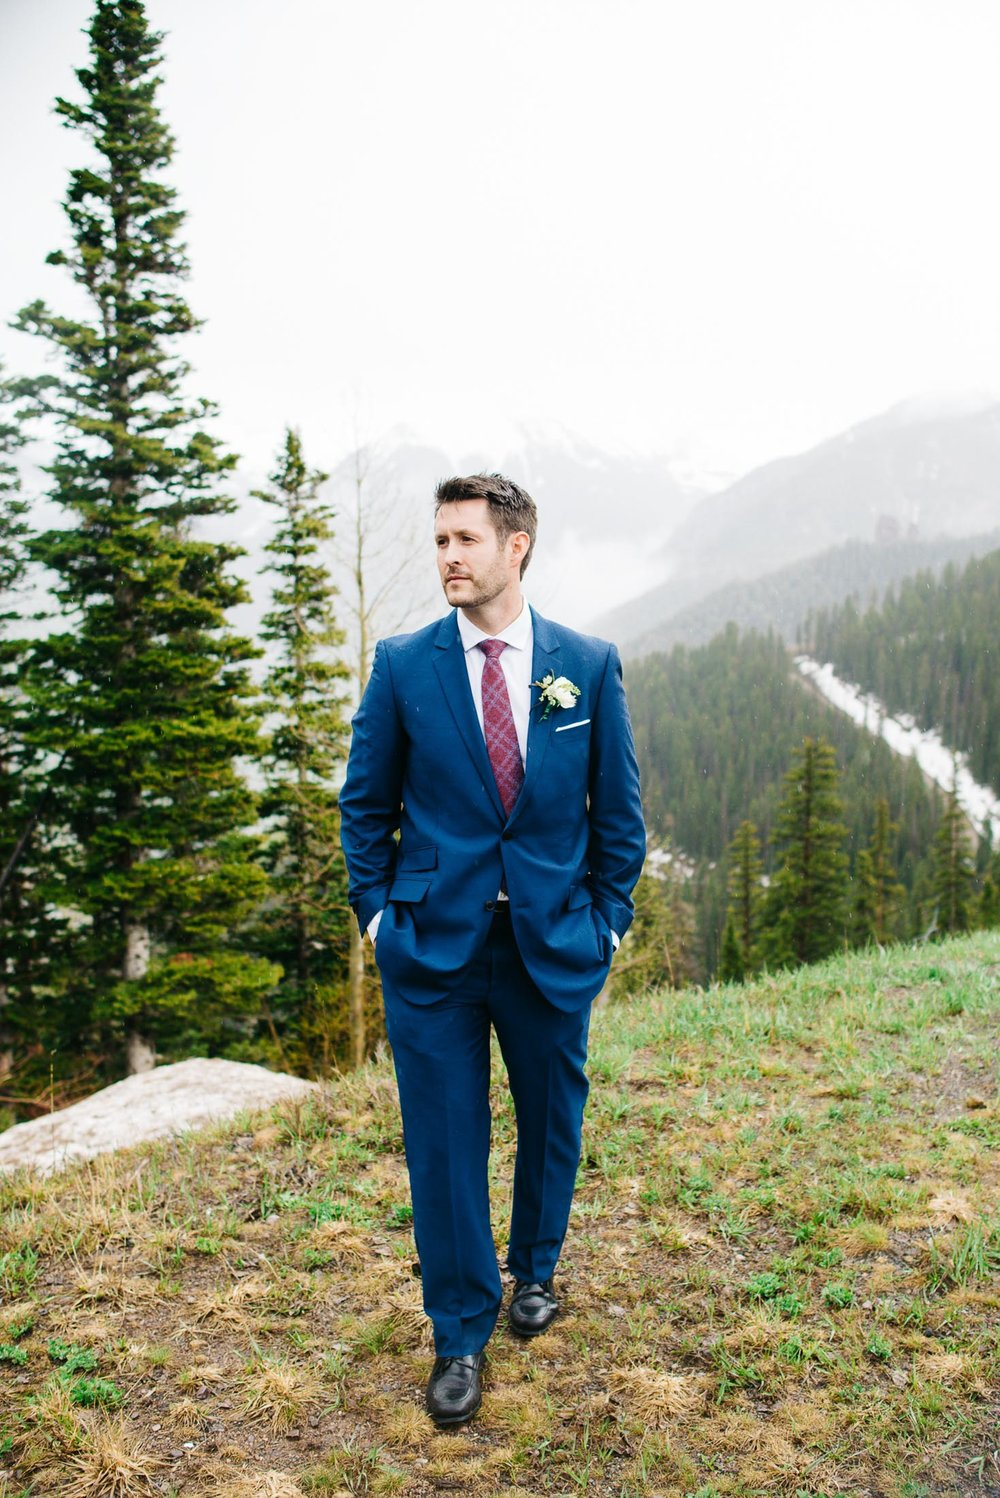 42elopement-photographer-colorado-colorado-mountain-wedding-photographer-romantic-wedding-pictures_012.jpg